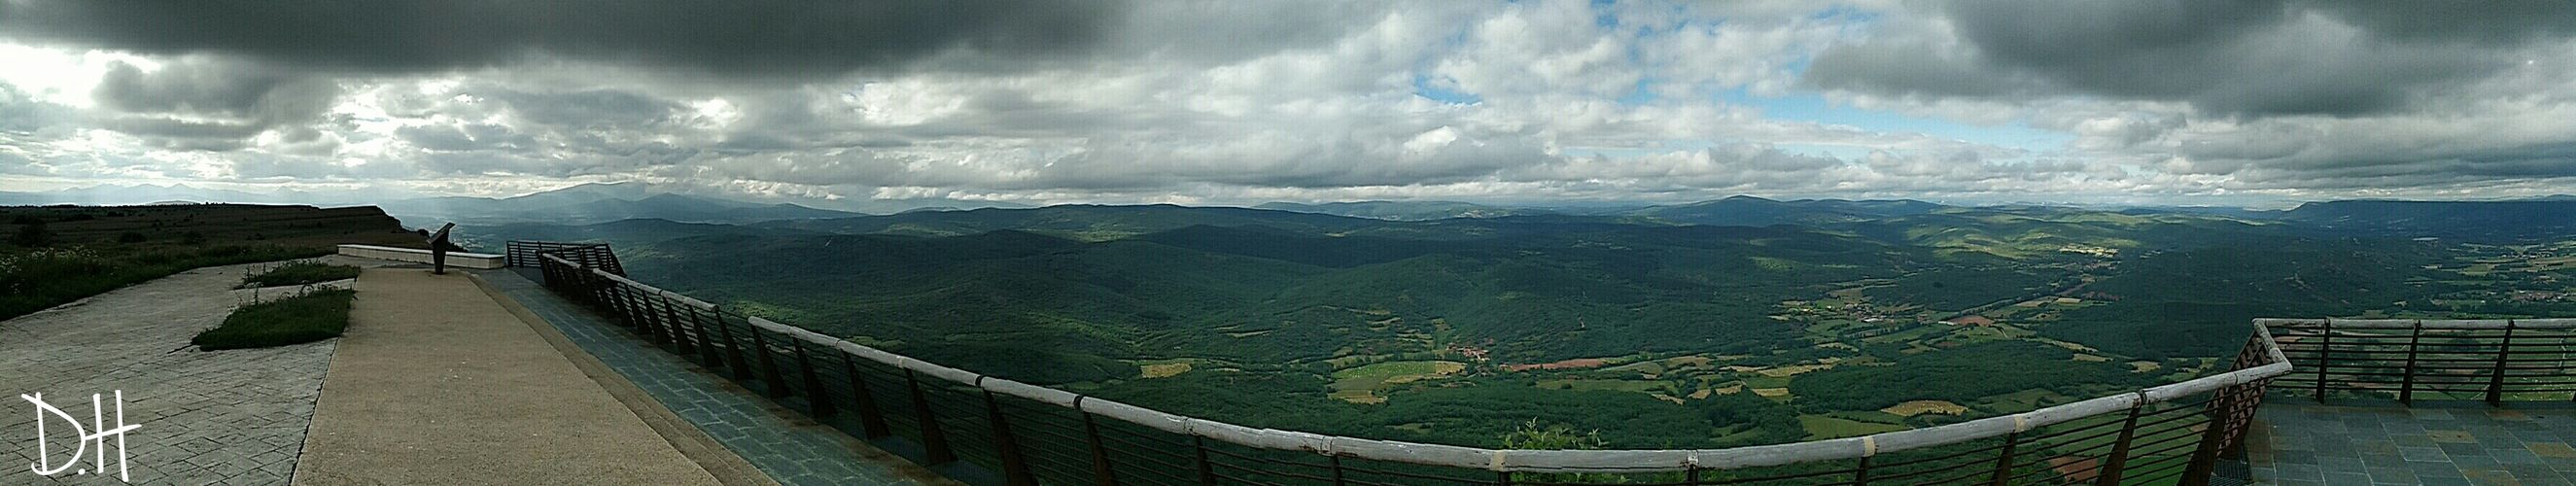 Panoramica realizada en el norte de palencia en el mirador de las cuevas de los Franceses Palencia Nature First Eyeem Photo Love ♥ Smartphonephotography Smartphone Photography Cool Nature Photography Photography Photolove The Great Outdoors With Adobe Estreno Mirador Mirador De Valcabado Ponar De Valdivia Cuevas De Los Franceses